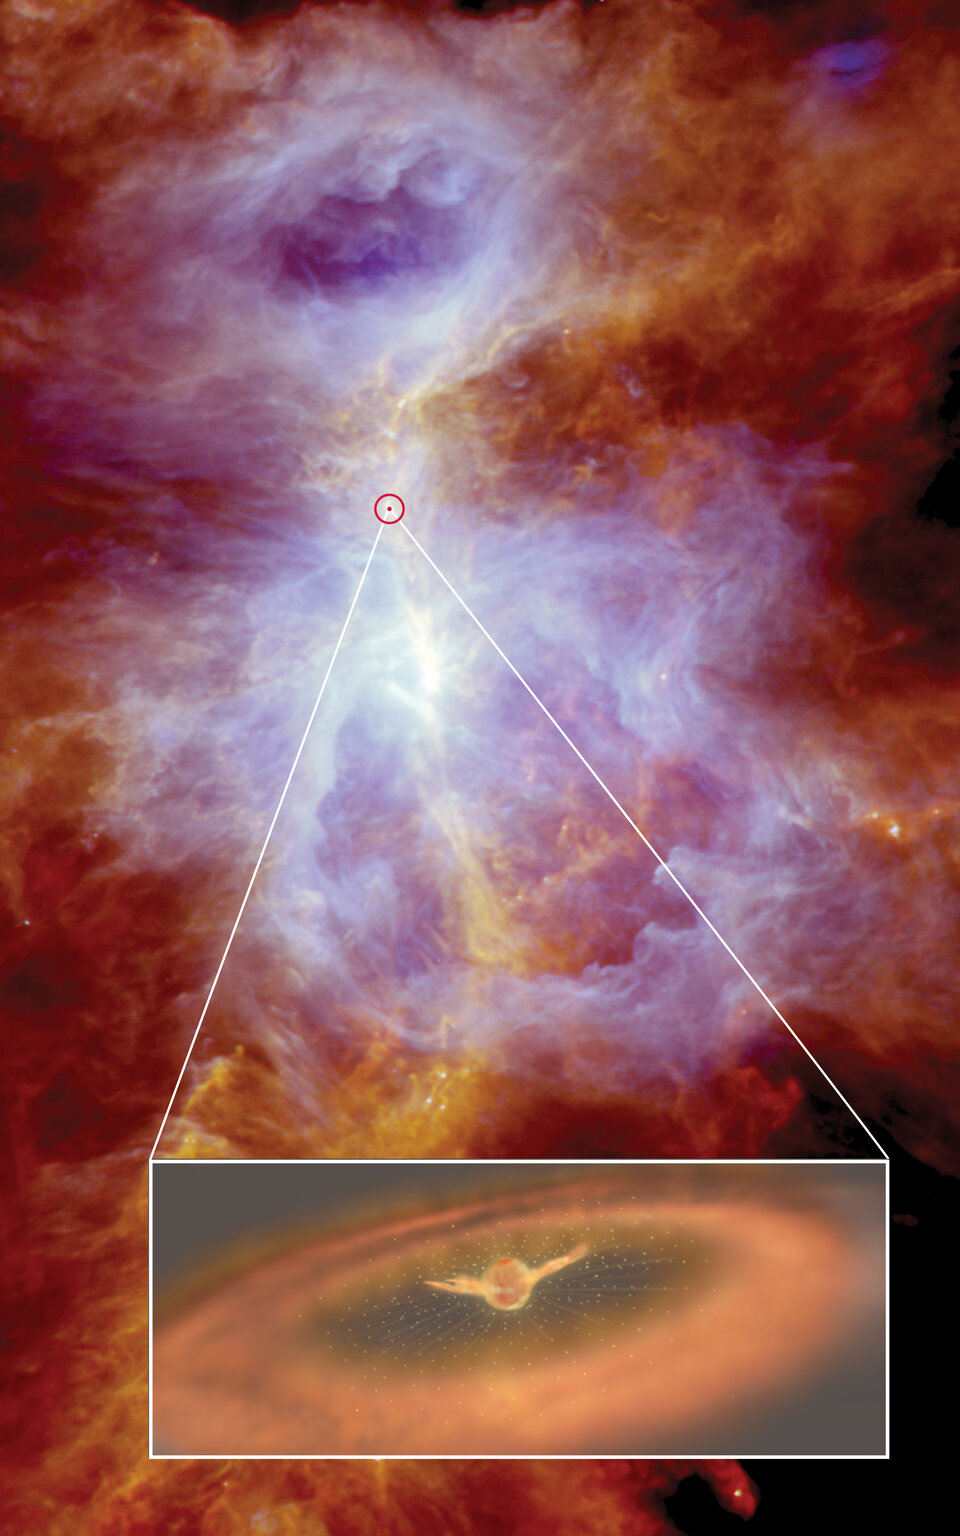 Violent wind gusting around protostar in Orion